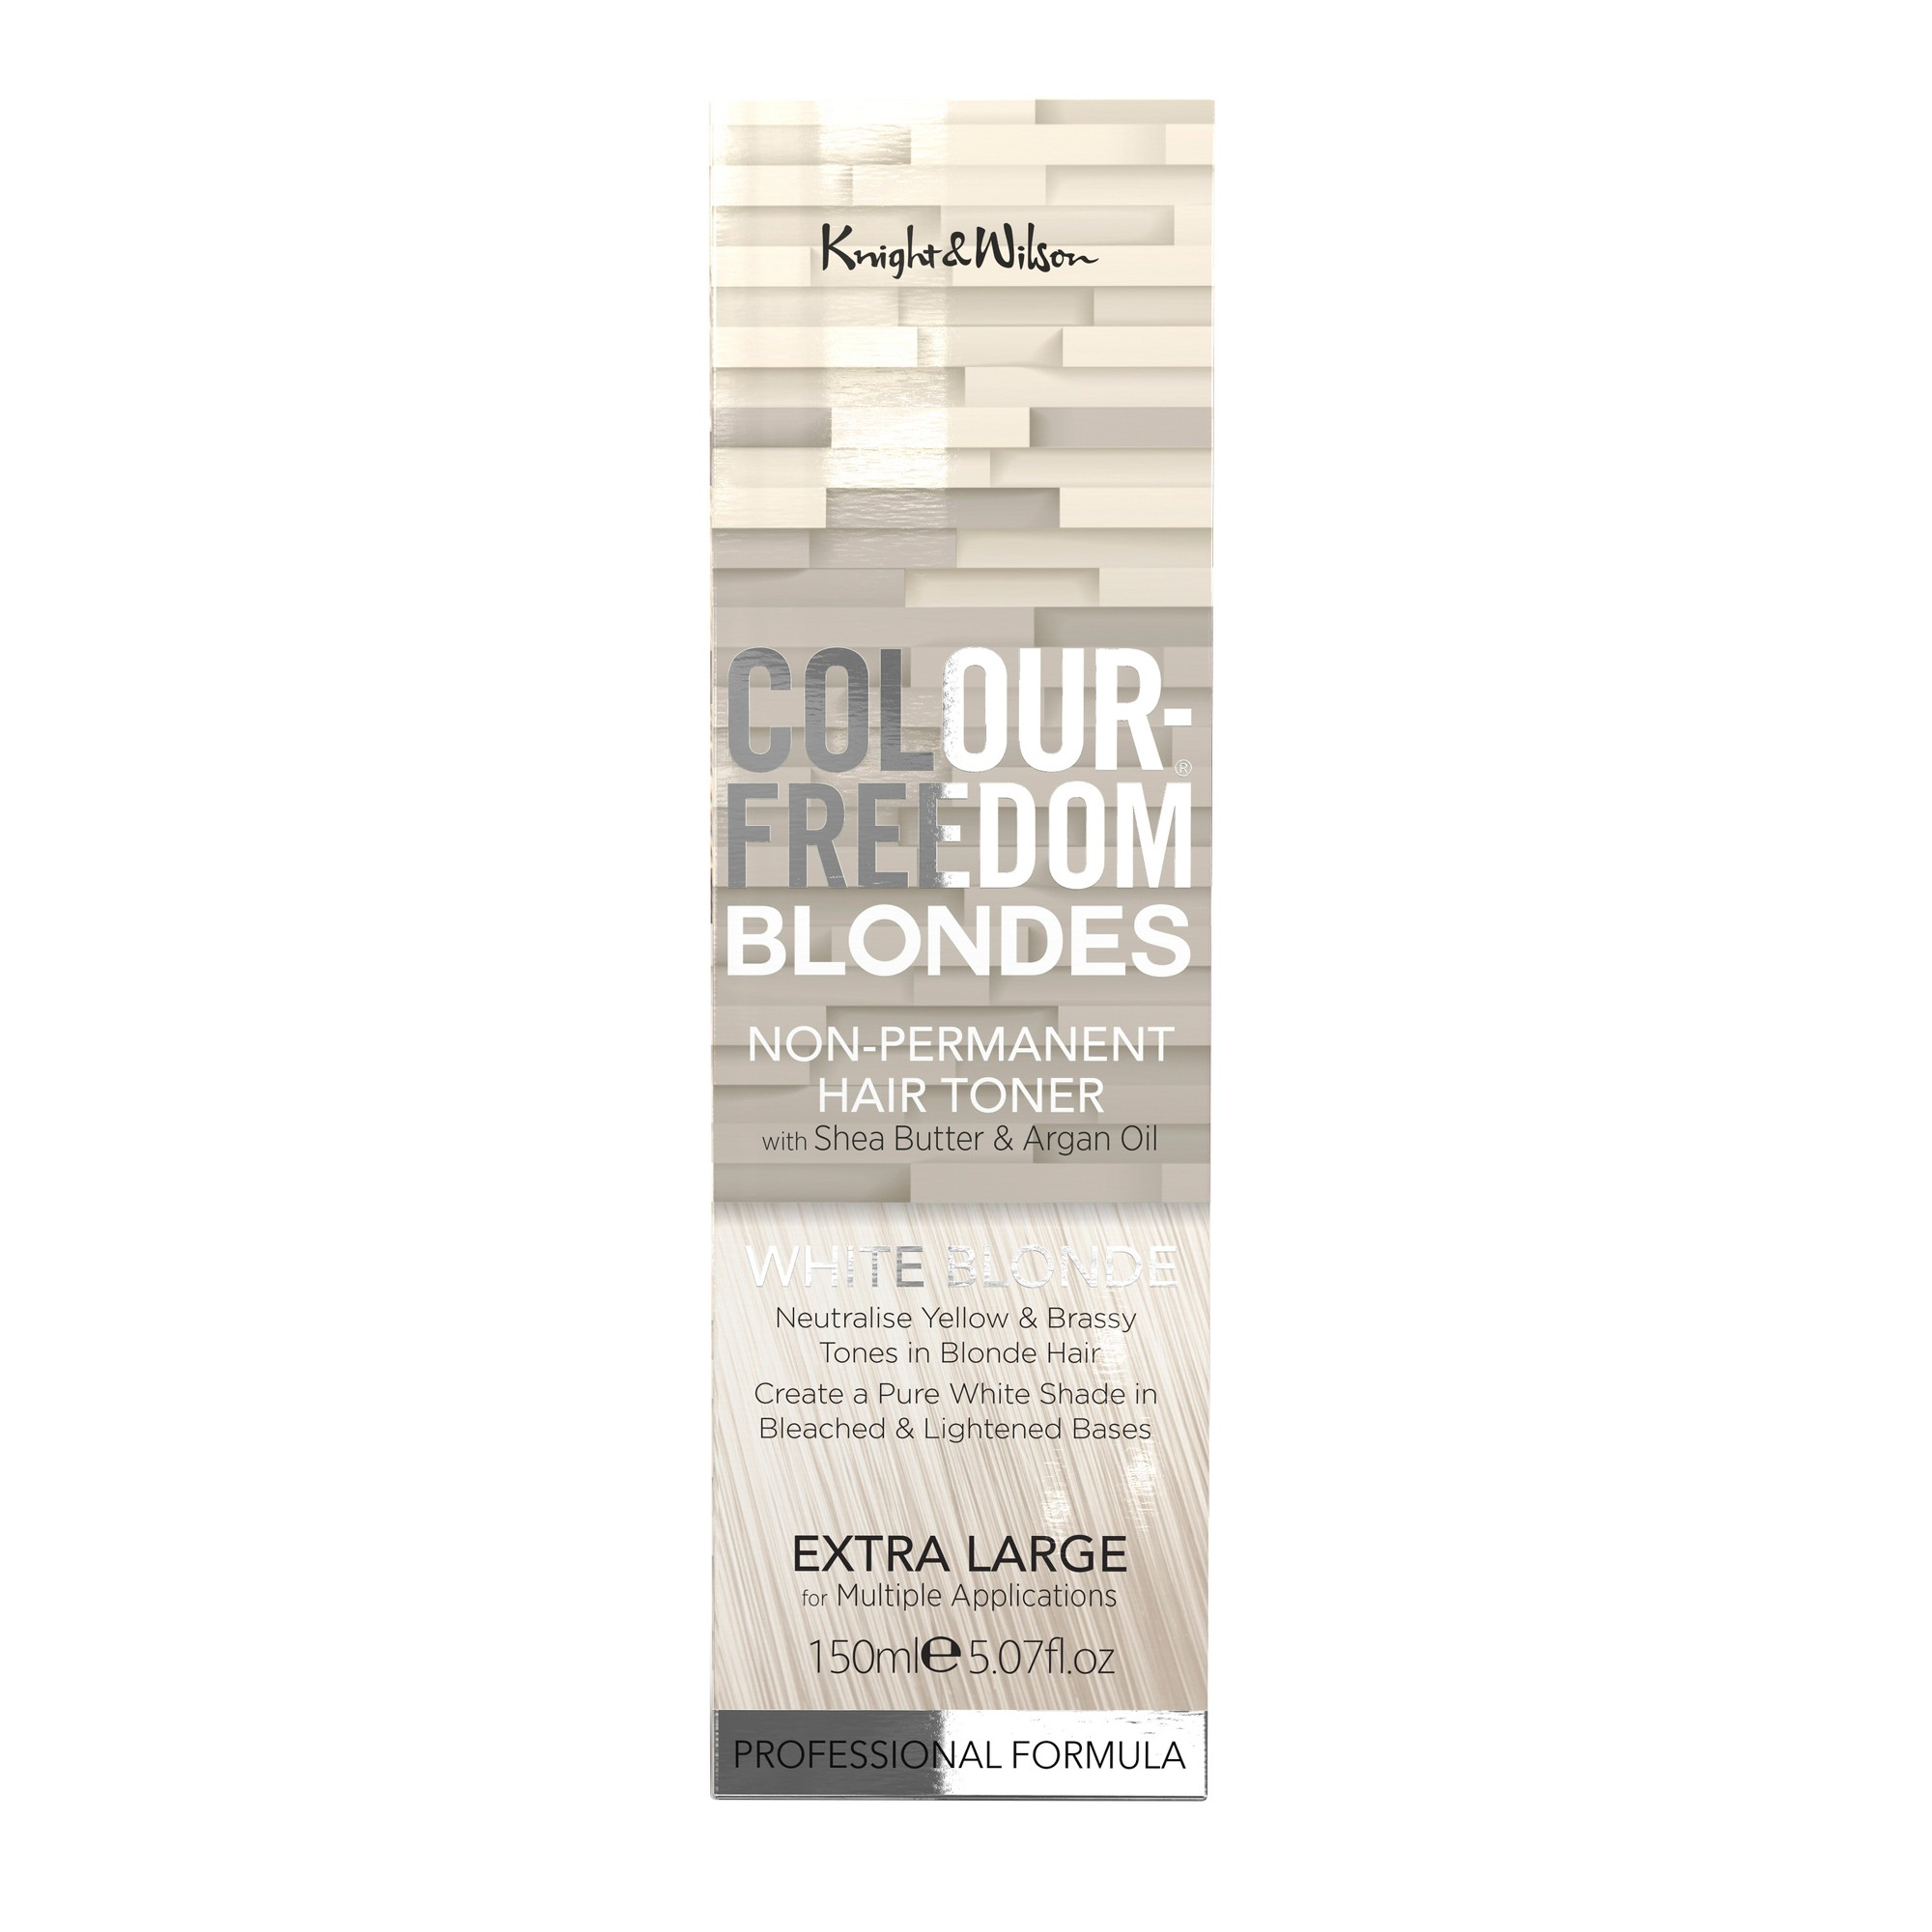 Knight & Wilson Color Freedom Blondes Non-Permanent Hair Toner - White Blonde - 5.07 fl oz